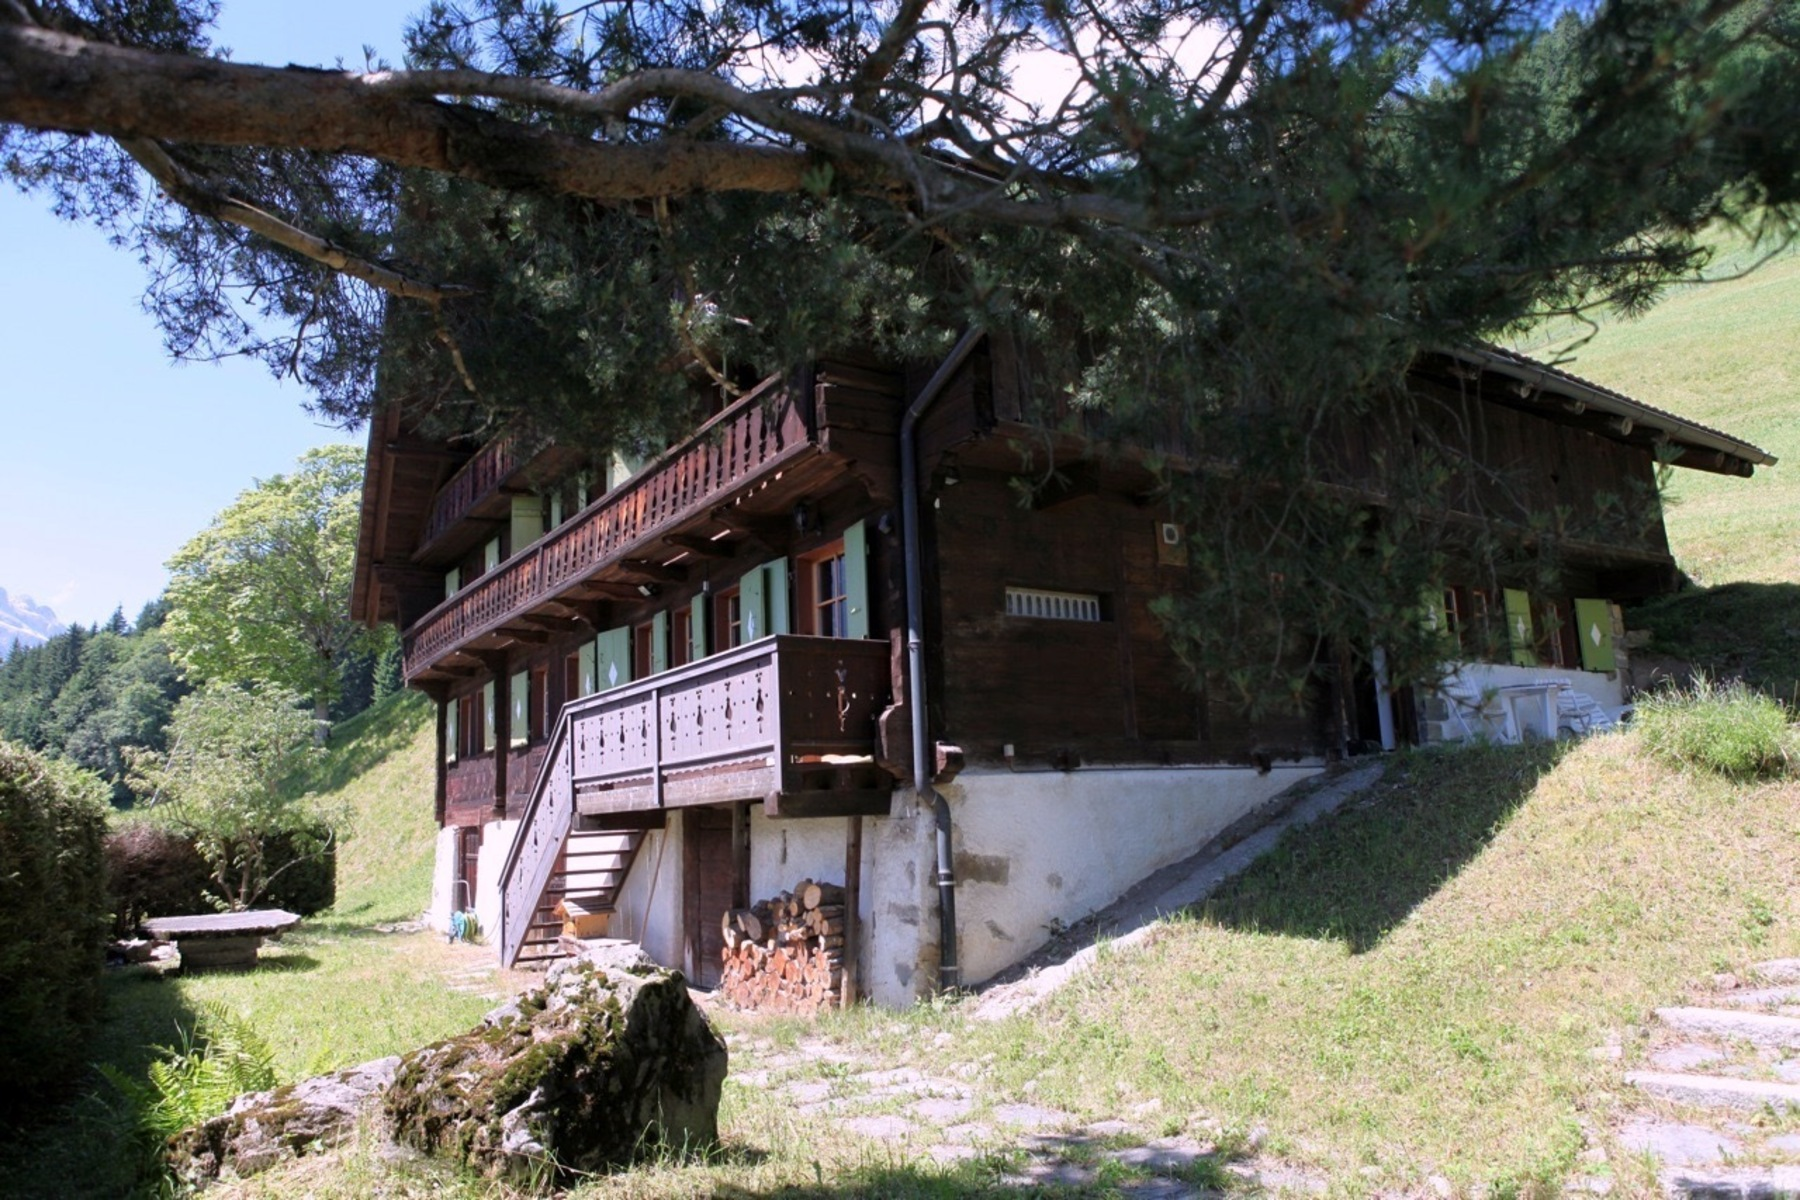 Casa Unifamiliar por un Venta en Beautiful chalet with a plot of 23'815 m2 Champéry Champery, Valais, 1874 Suiza